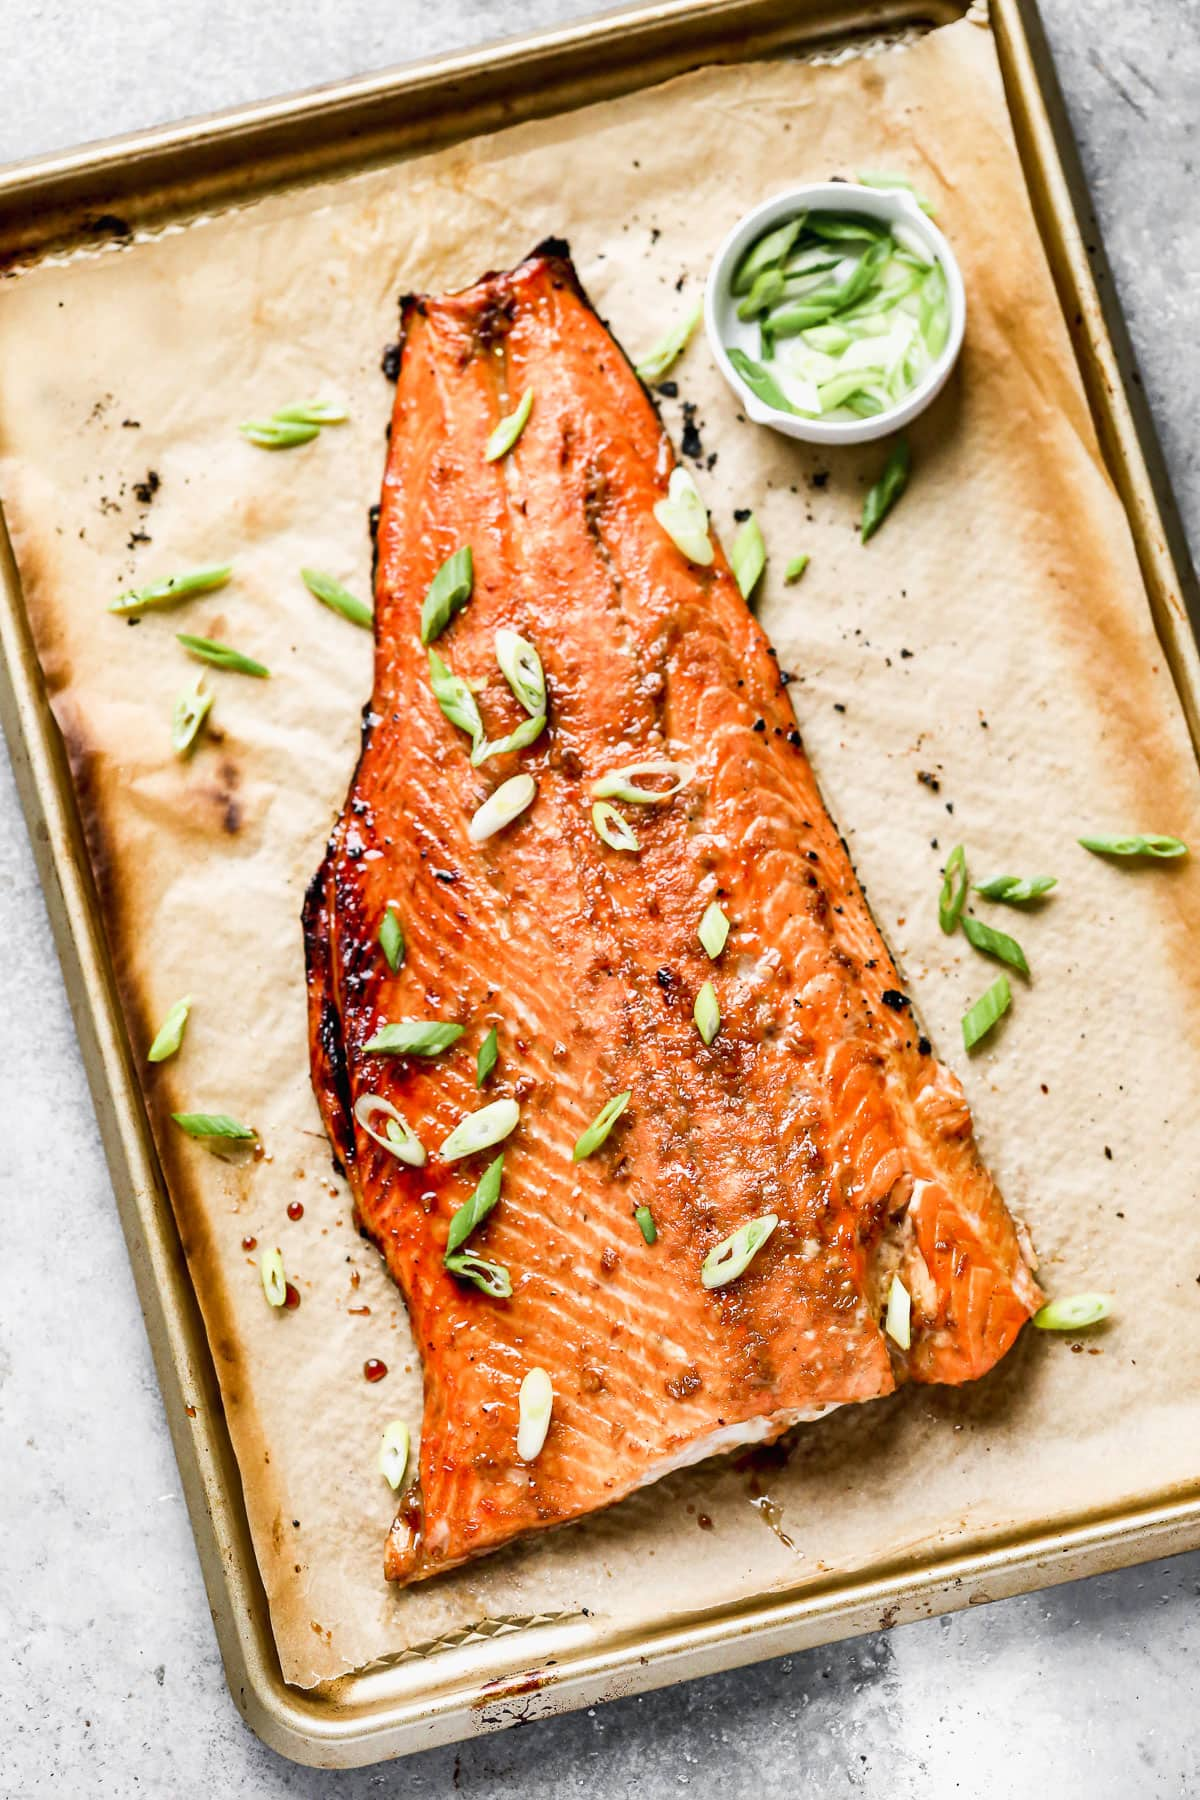 A baking sheet with a fillet of bourbon glazed salmon